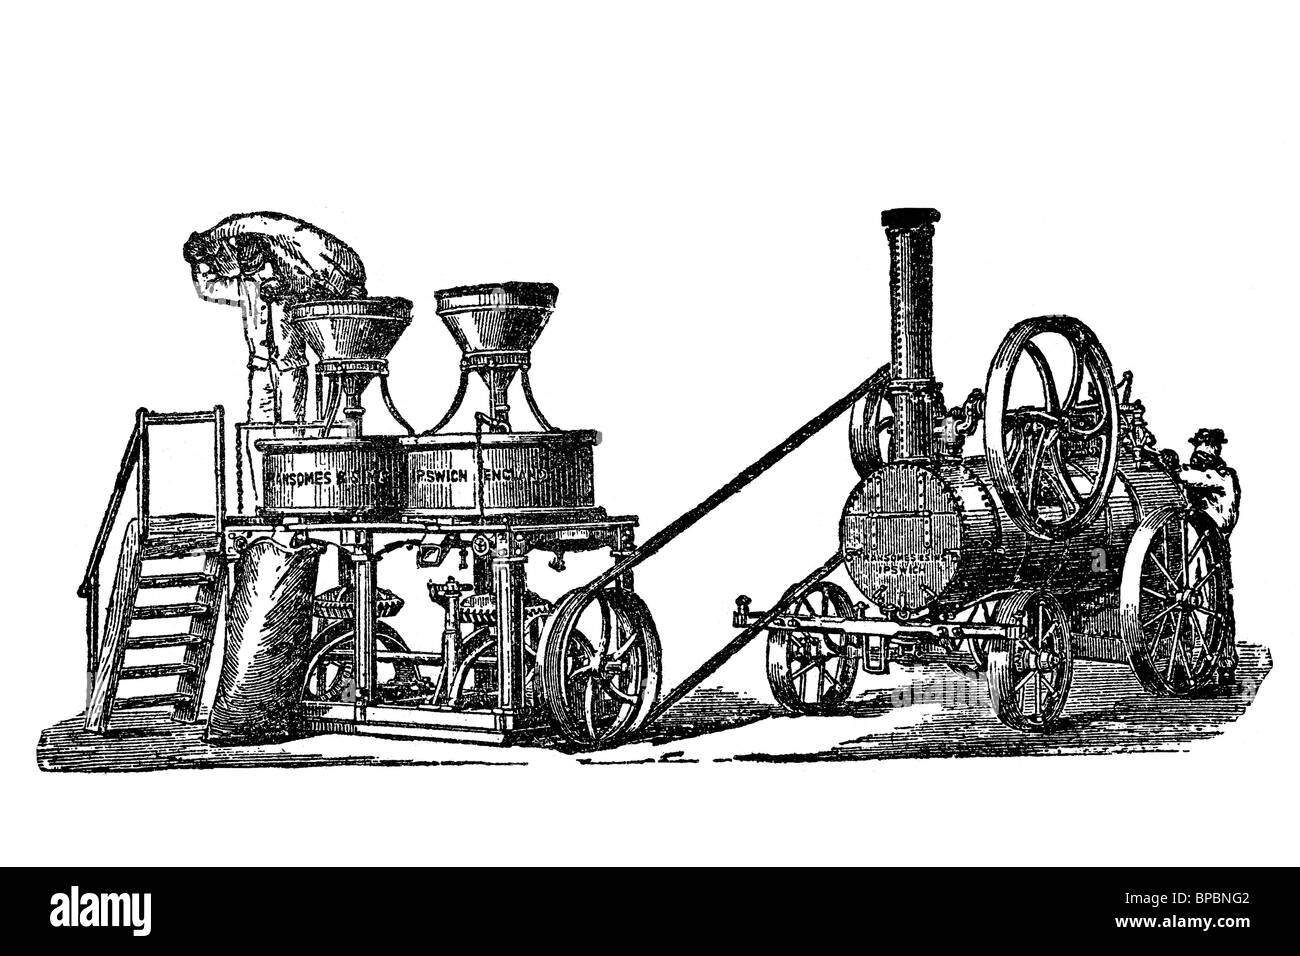 Millstone moved by steam engine. Antique illustration. 1900. - Stock Image